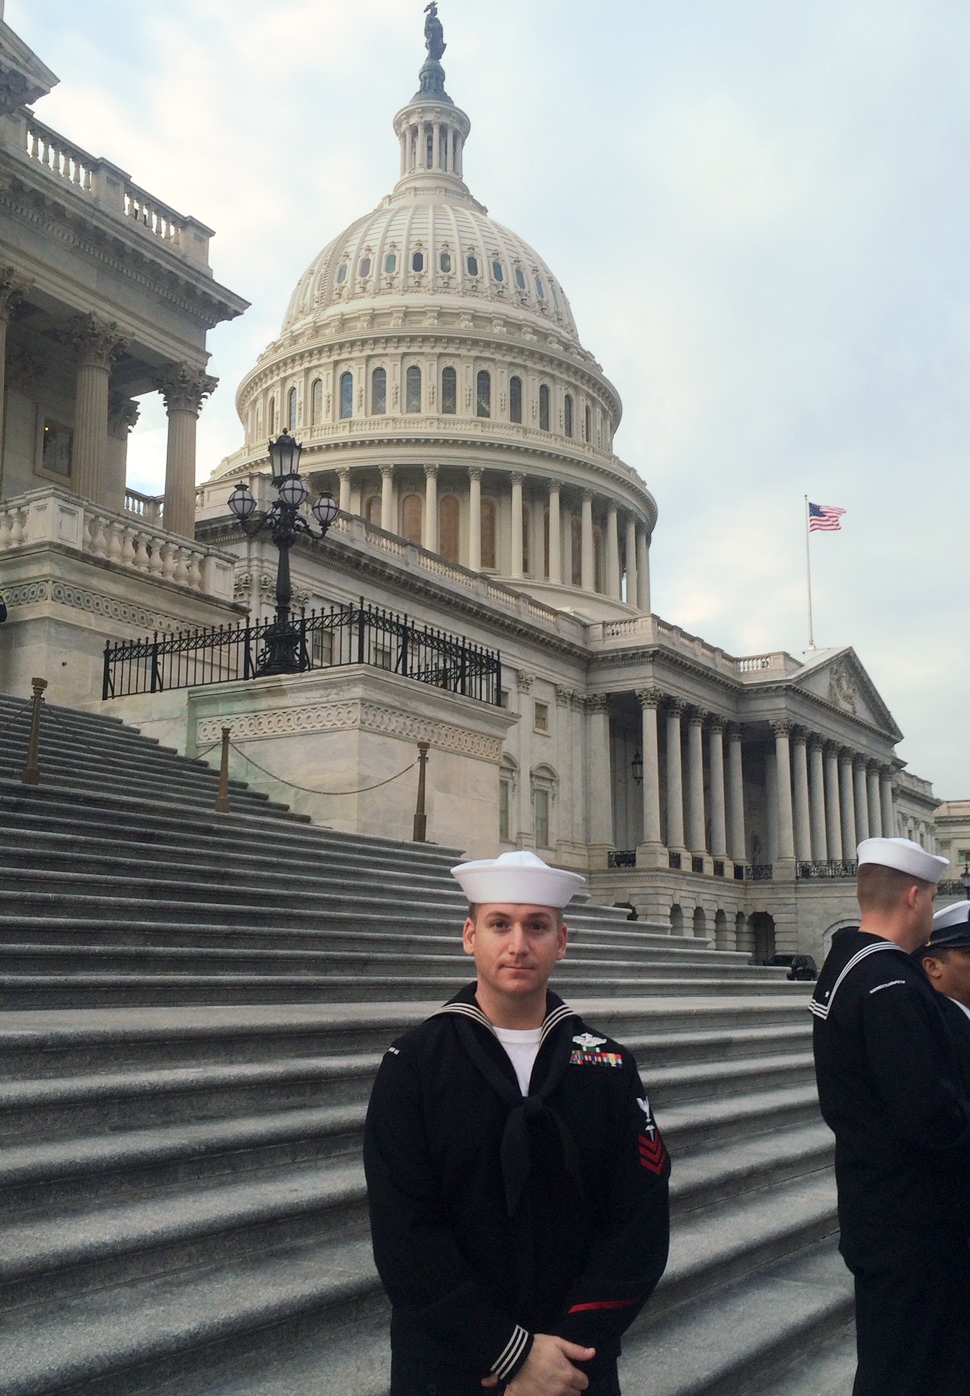 Navy sailor standing in front of the Capitol Building